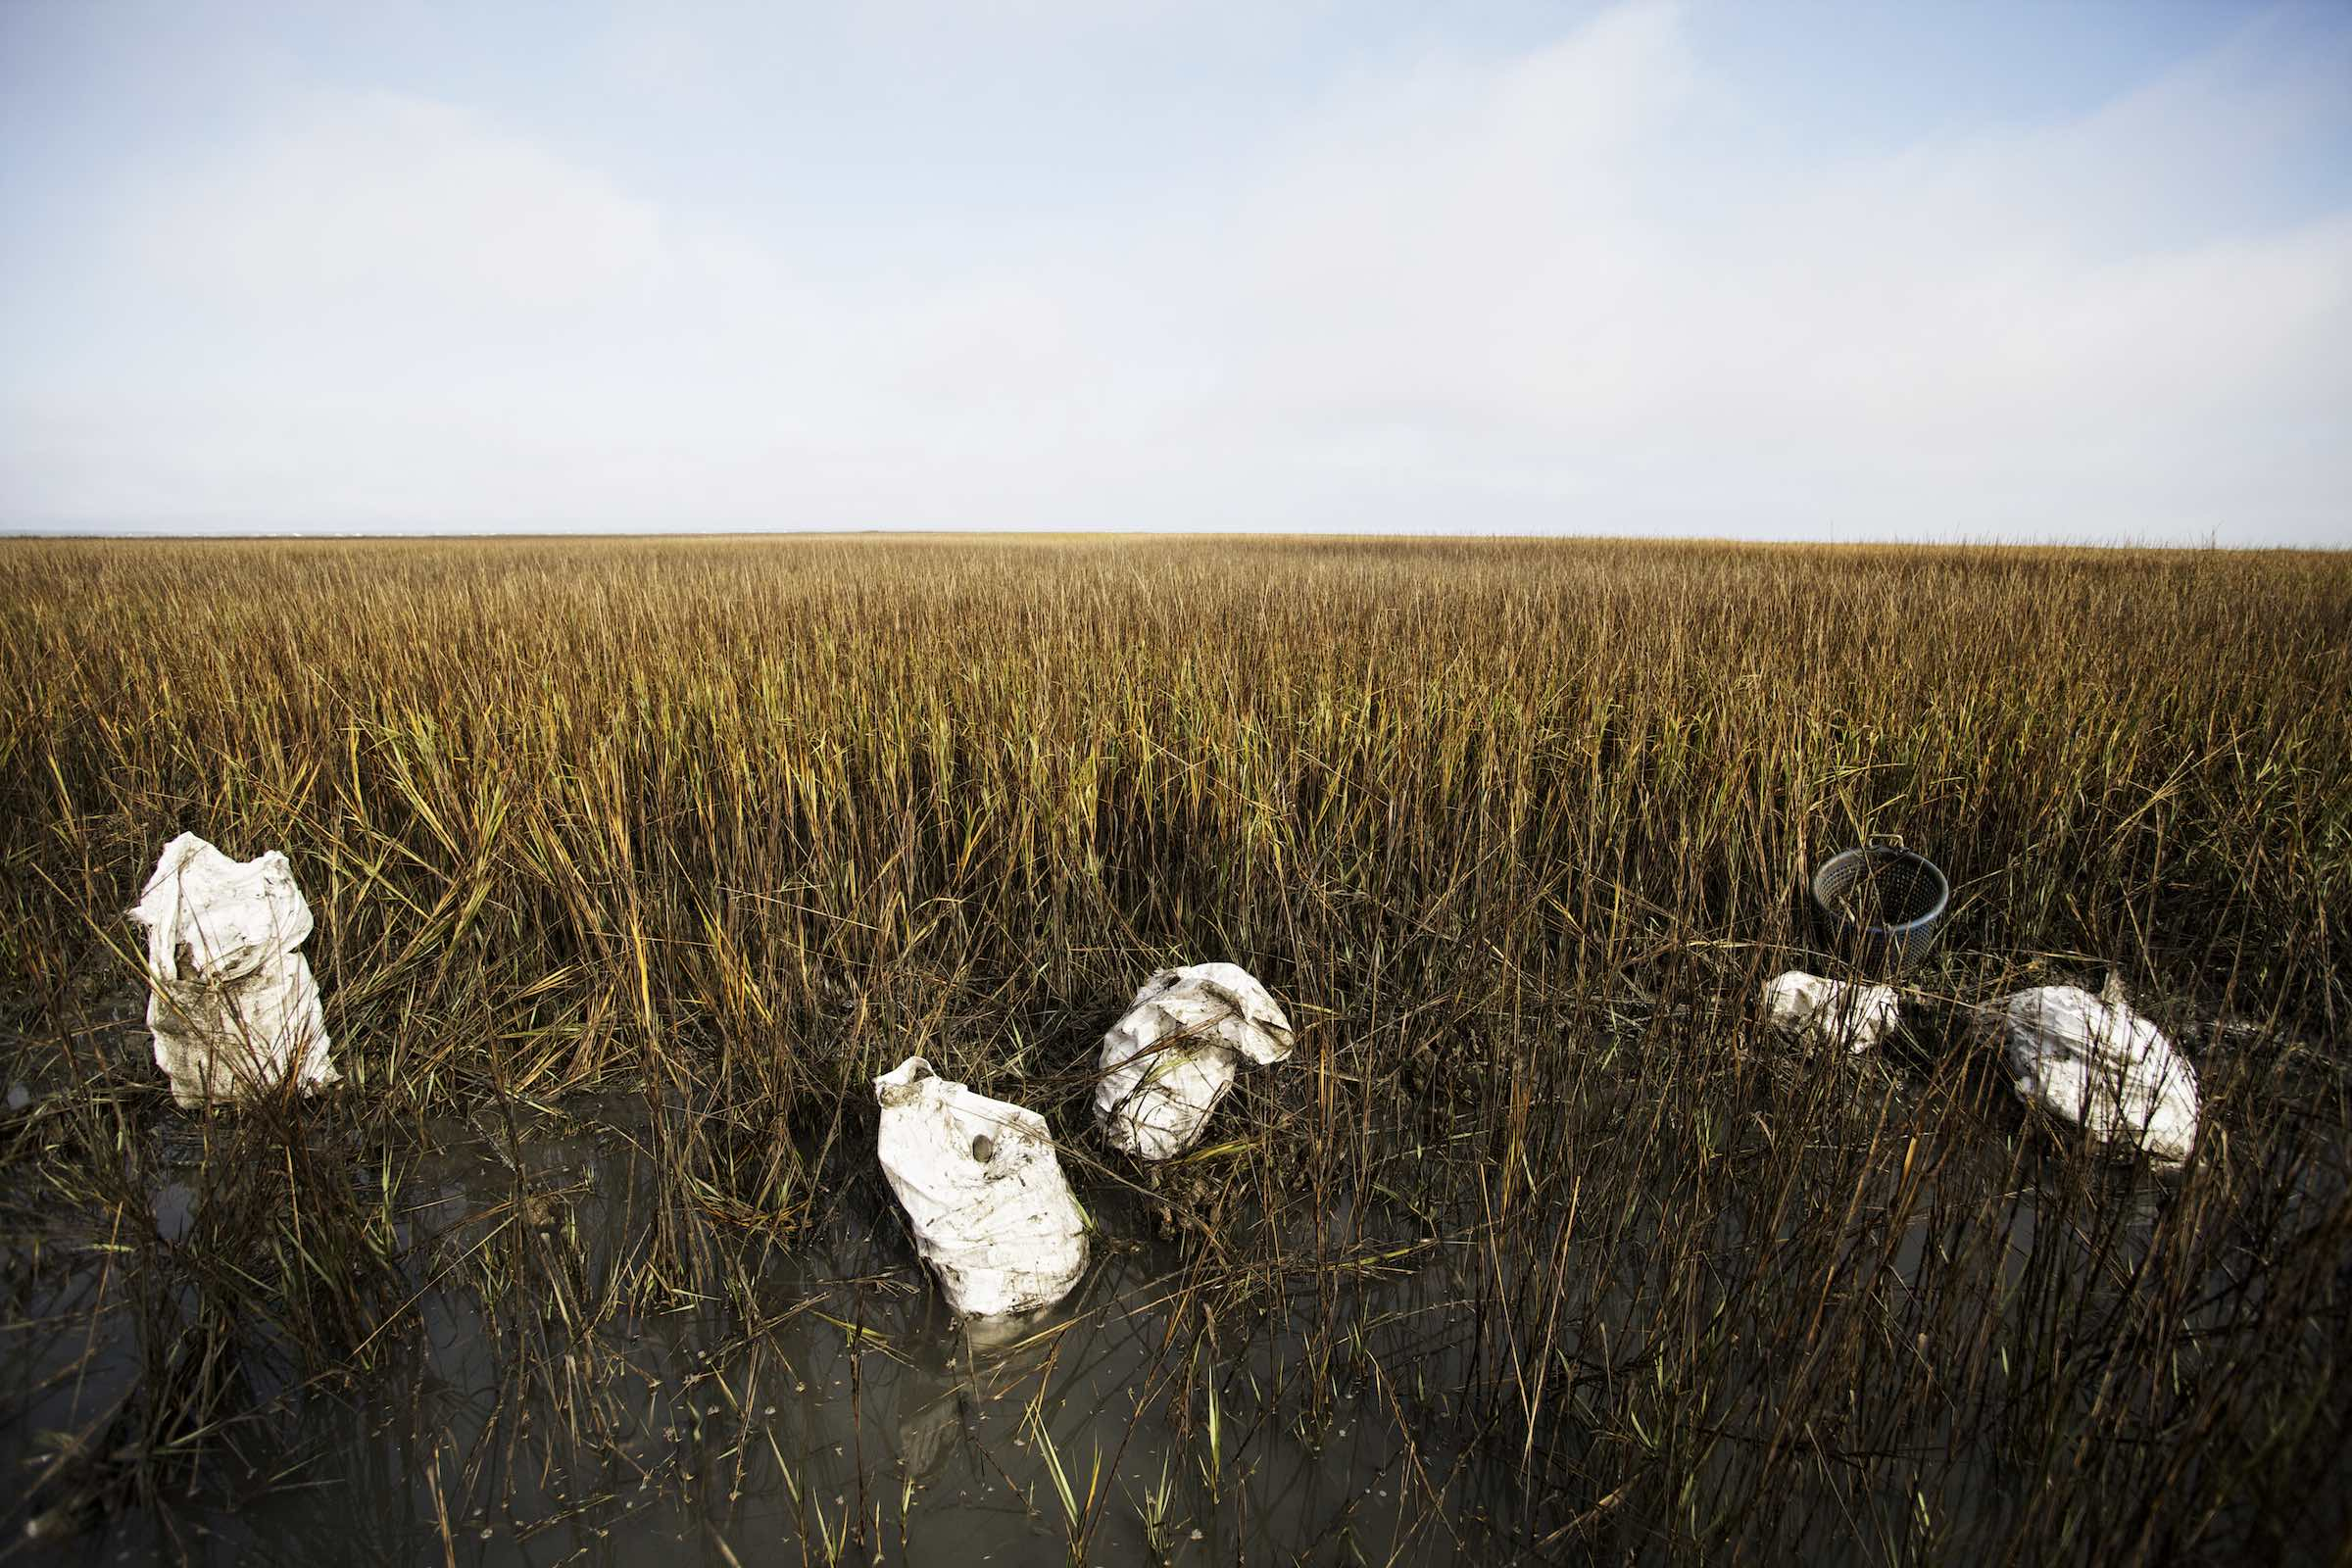 Jody Horton Photography - Oysters collected in white sacks placed haphazardly in marsh grasses.